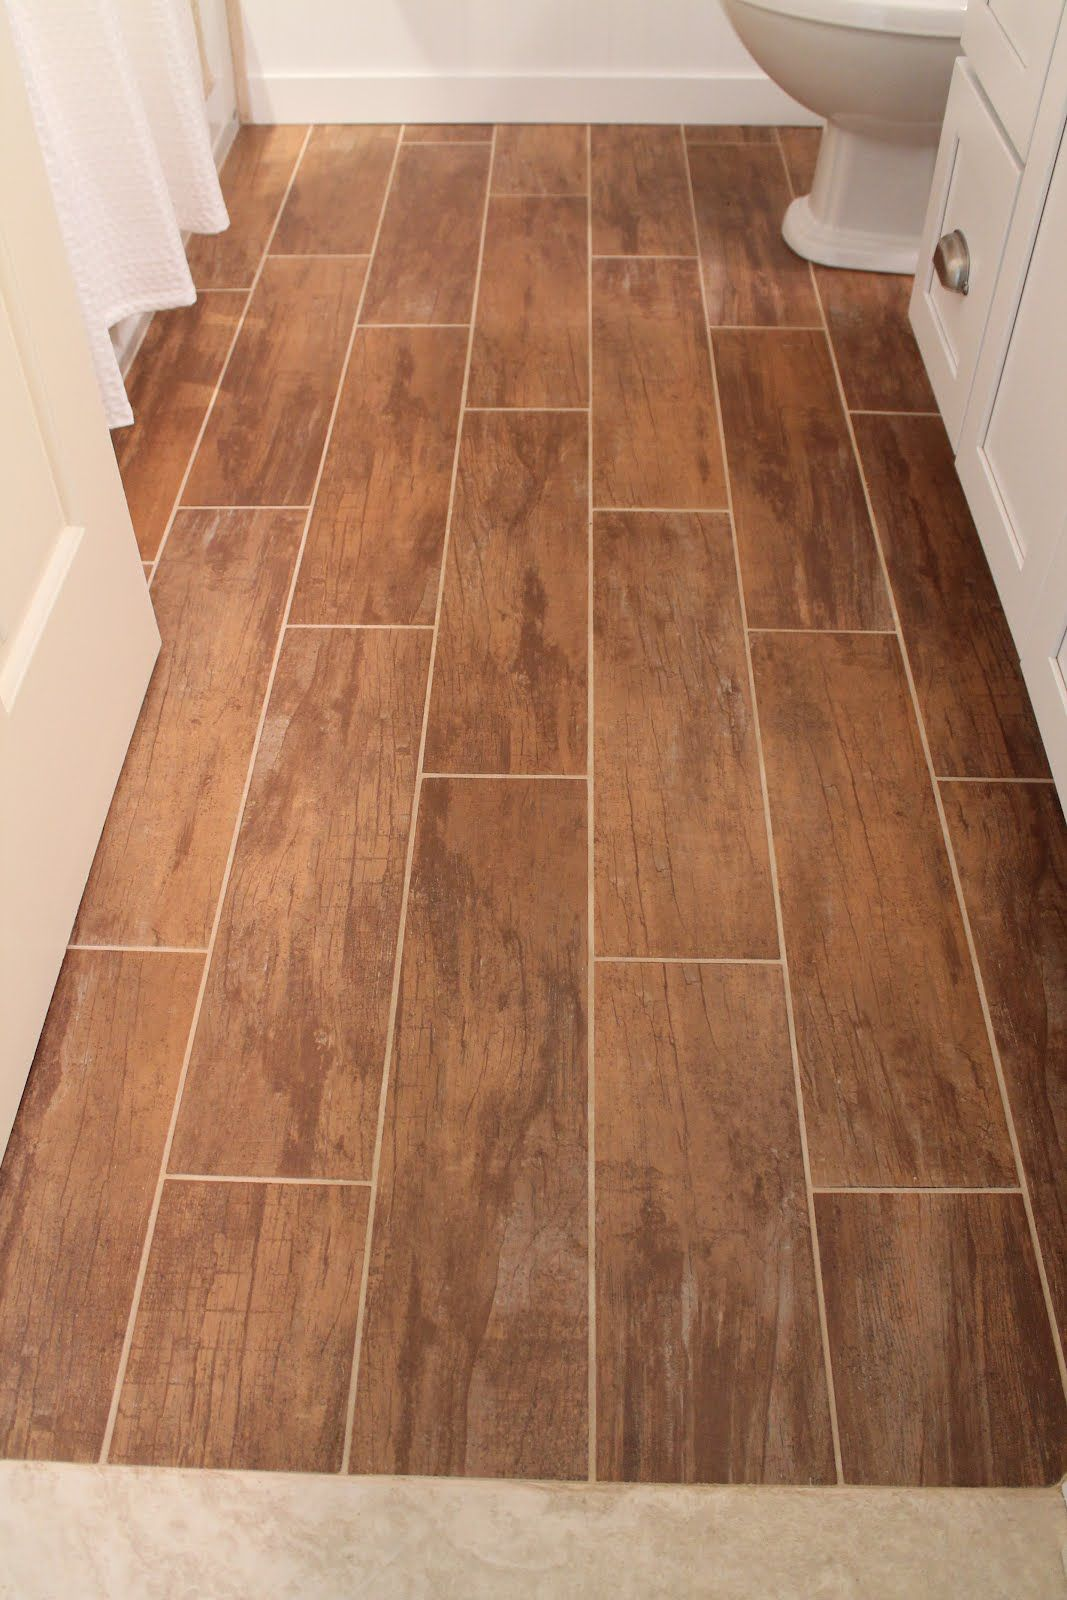 Faux Wood Floor Tile... Probably the best option for us that love the - Faux Wood Floor Tile... Probably The Best Option For Us That Love